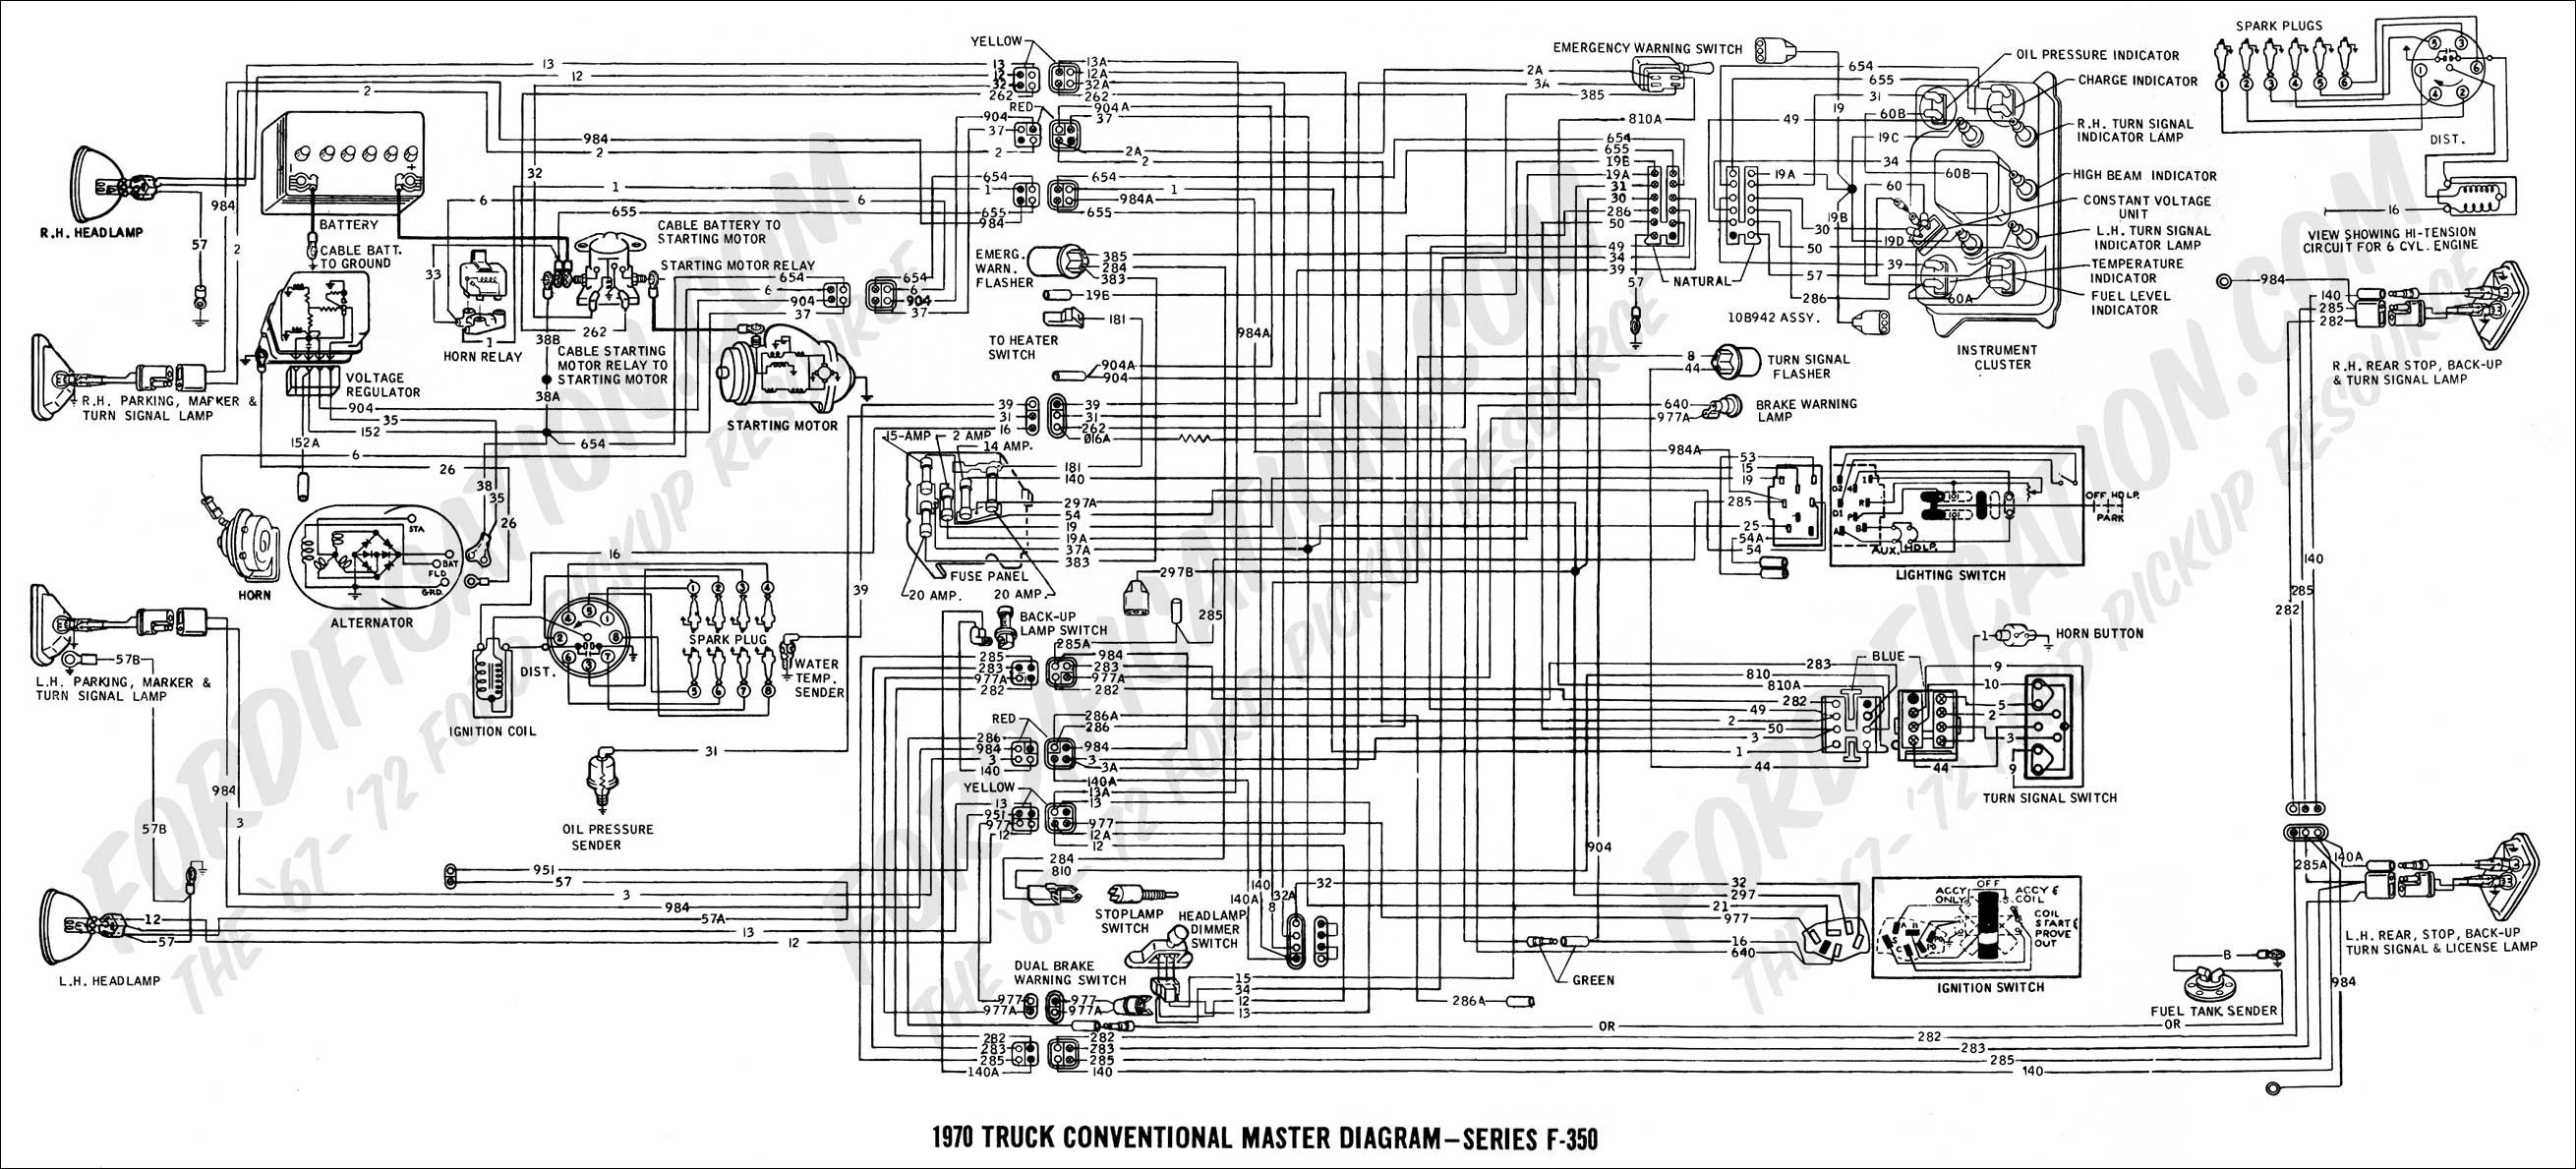 2001 Escape Engine Diagram Wiring Library 02 Ford Crown Vic Fuse 2003 F150 Of